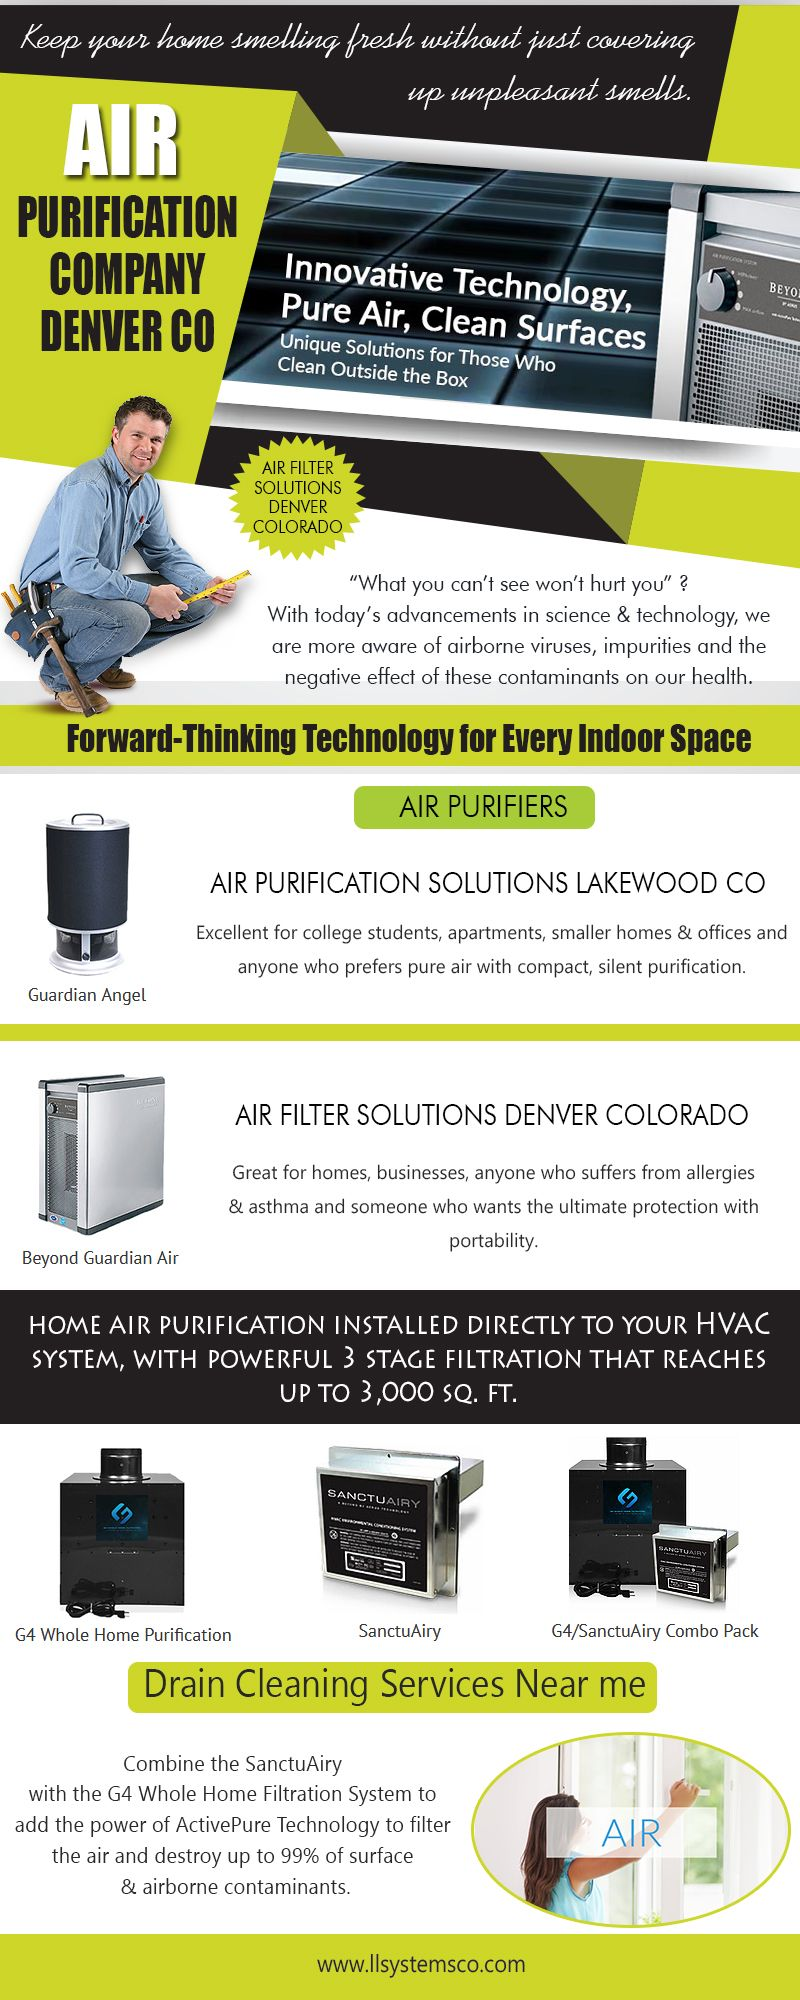 Water Filtration Purification Systems In Colorado Purification Pure Air Air Purification